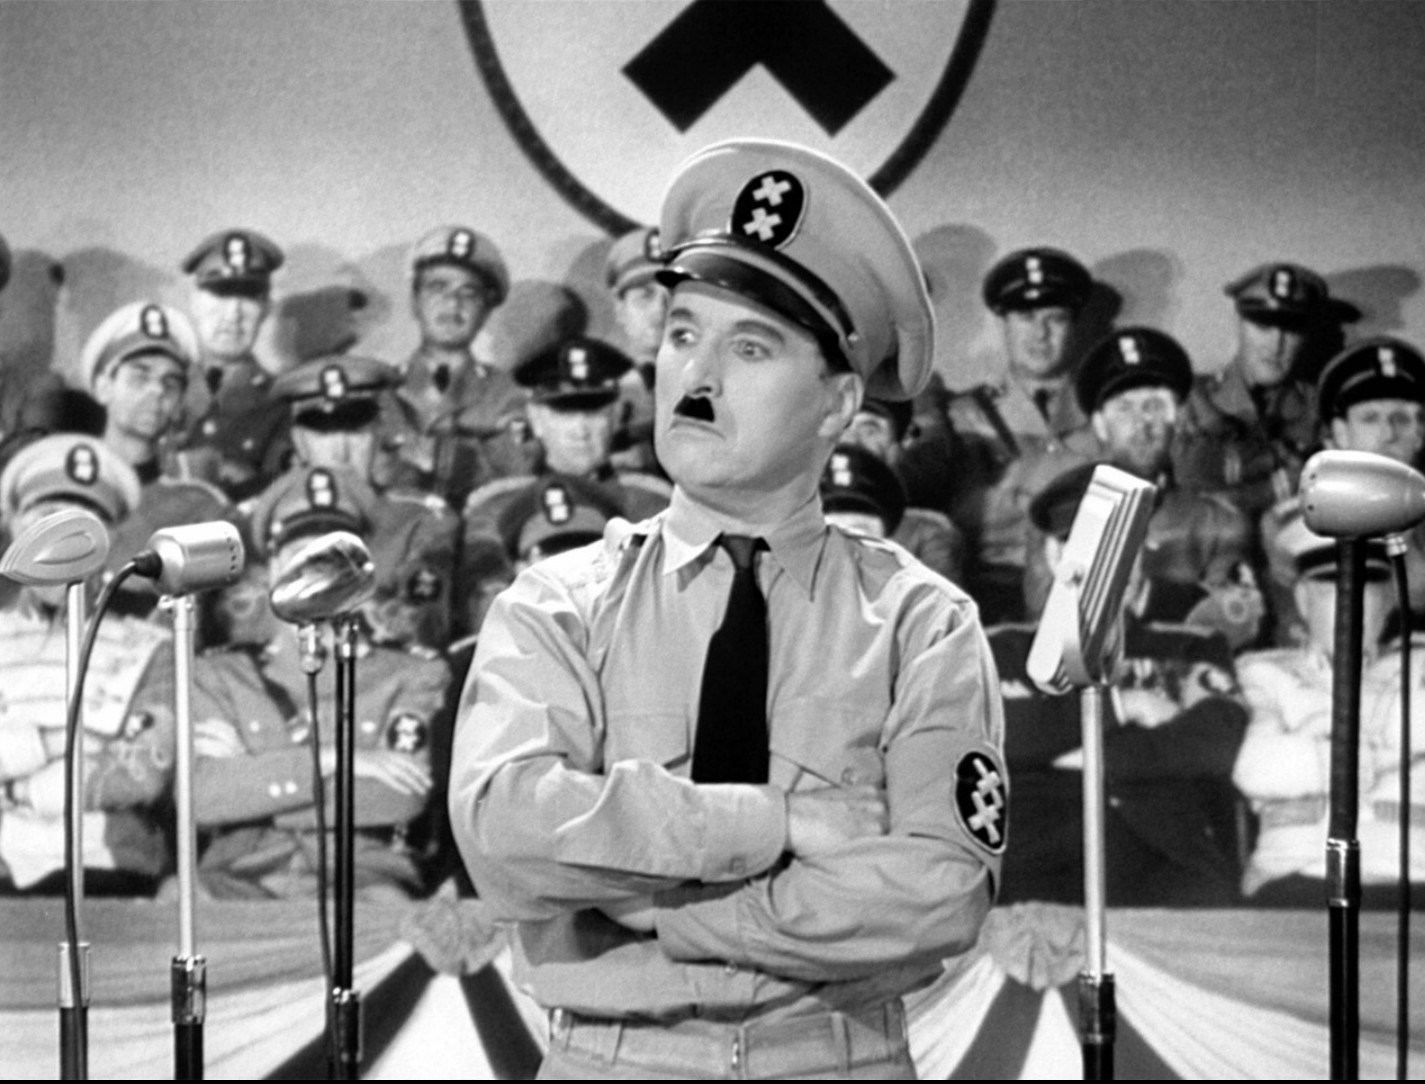 Caption: Charlie Chaplin in The Great Dictator